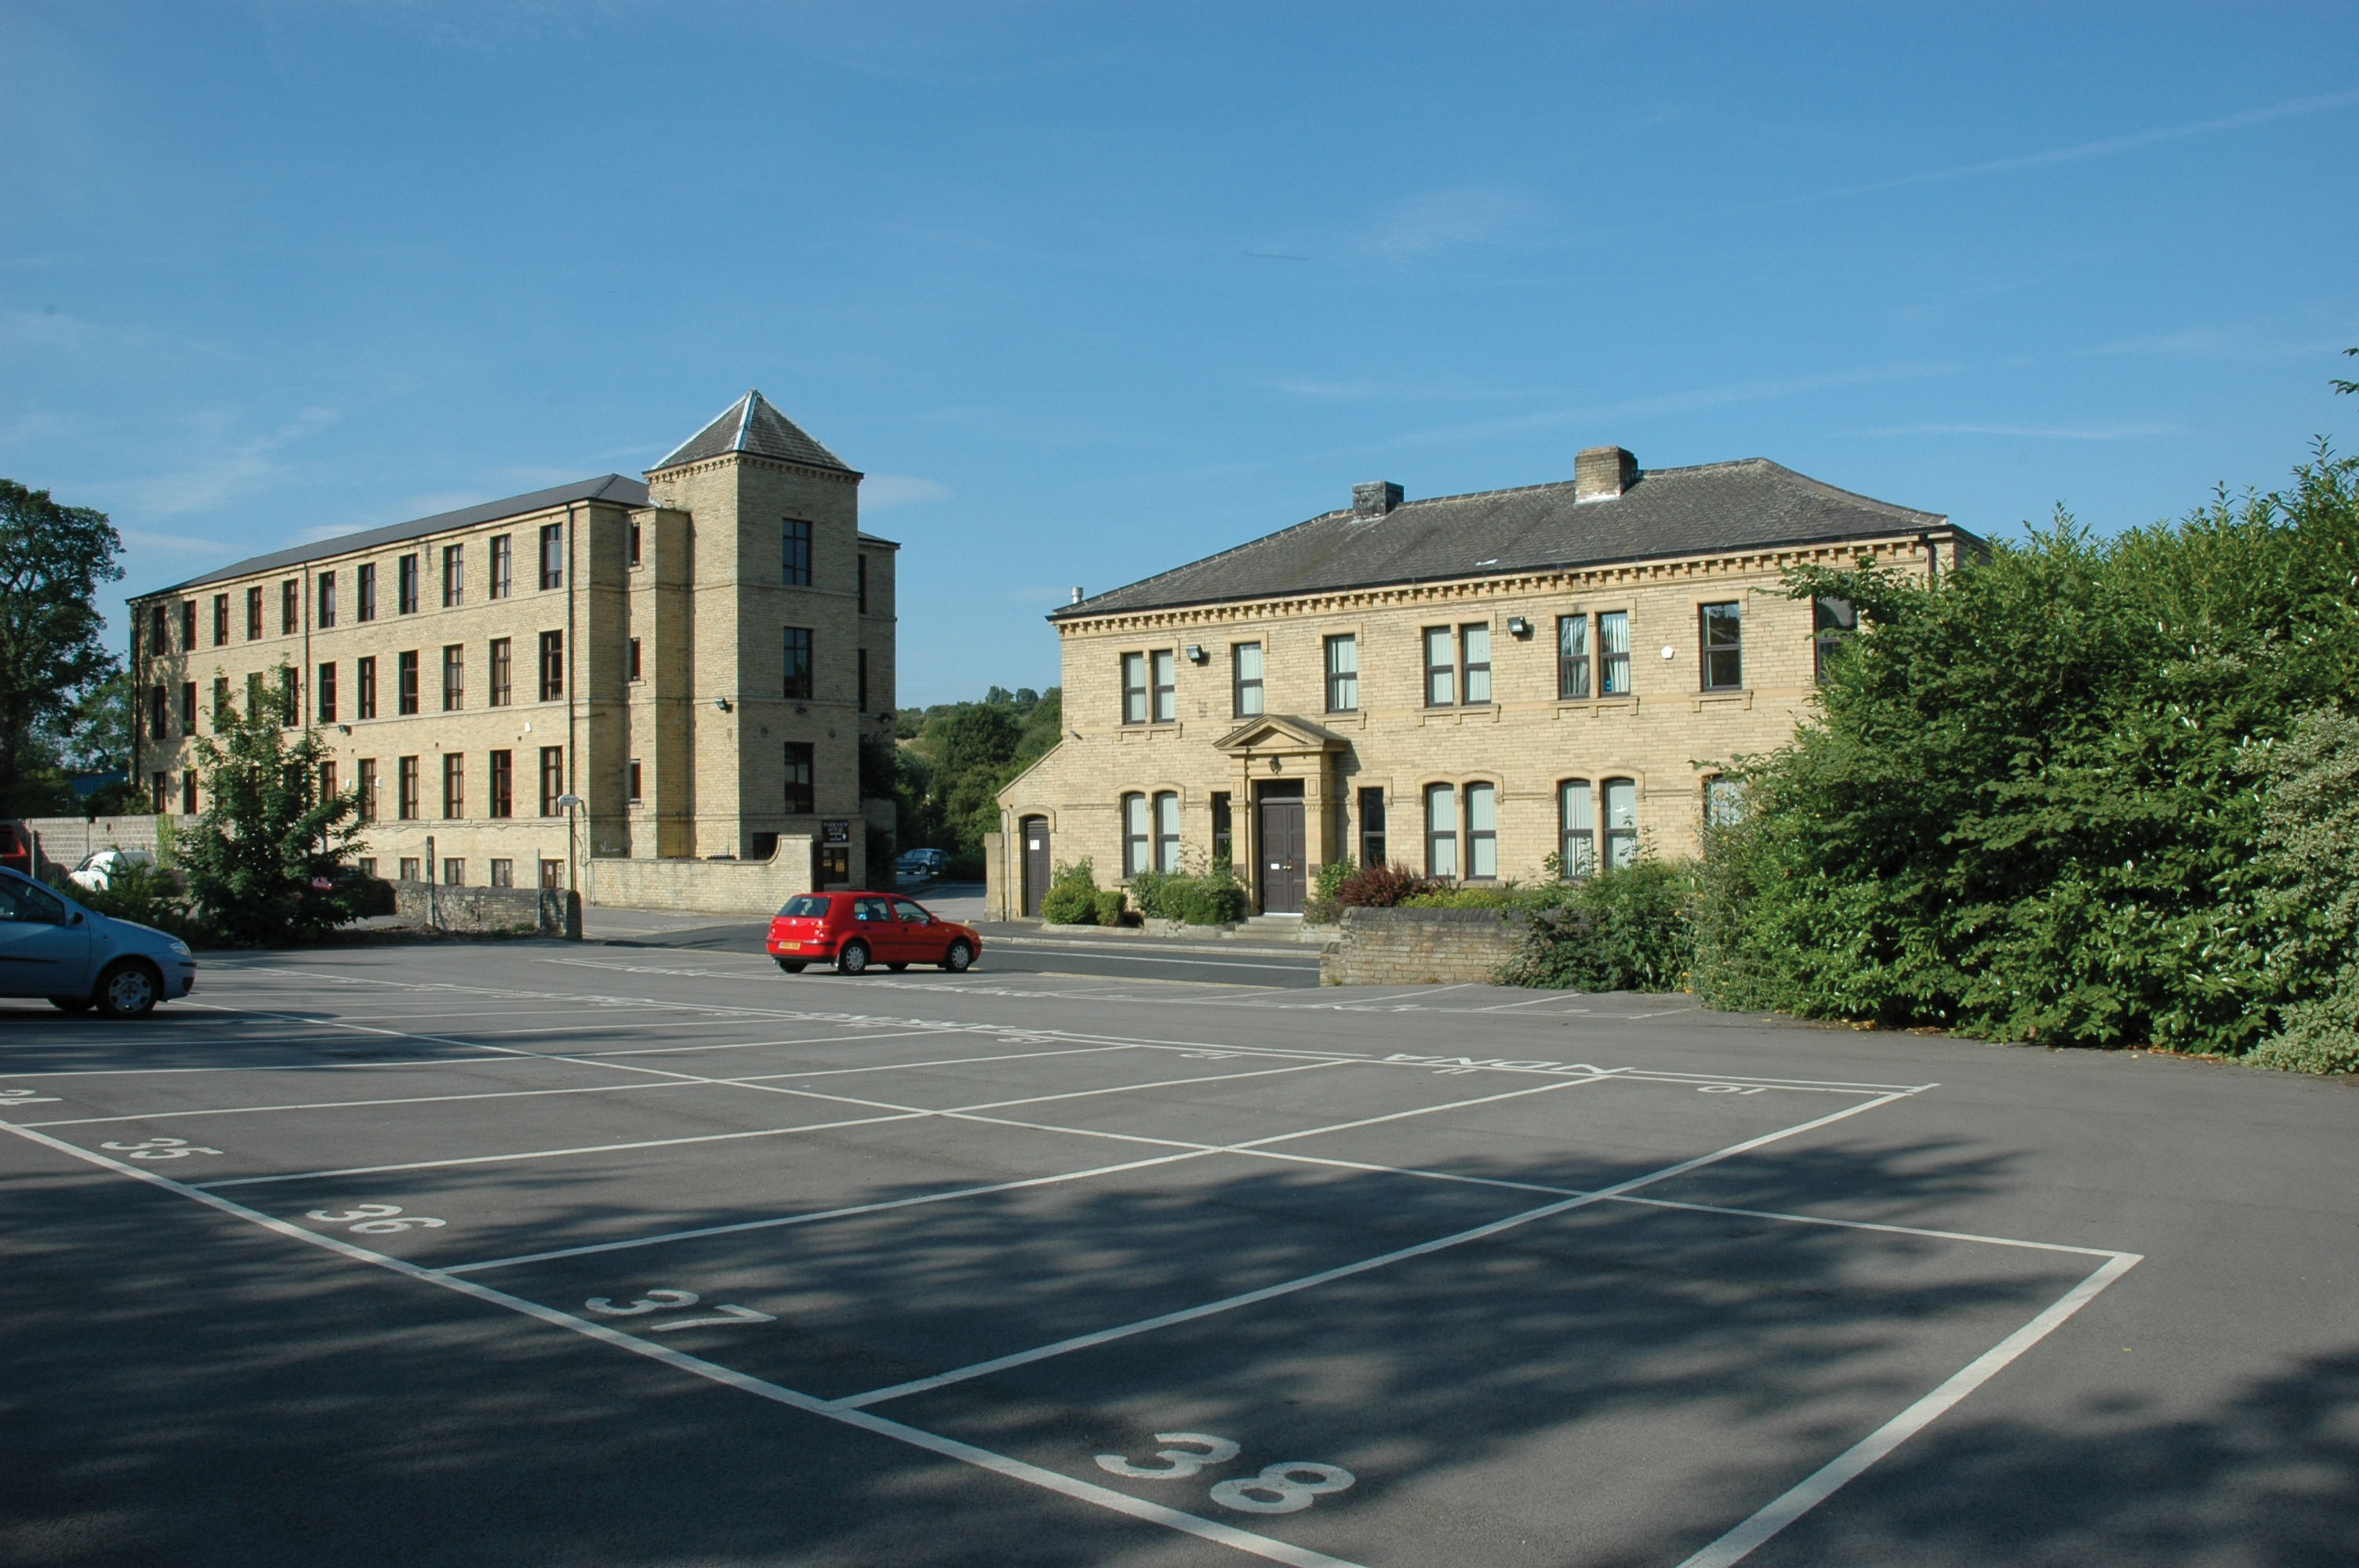 Towngate - Woodvale Office Park - Woodvale Road, Brighouse, HD6 - West Yorkshire